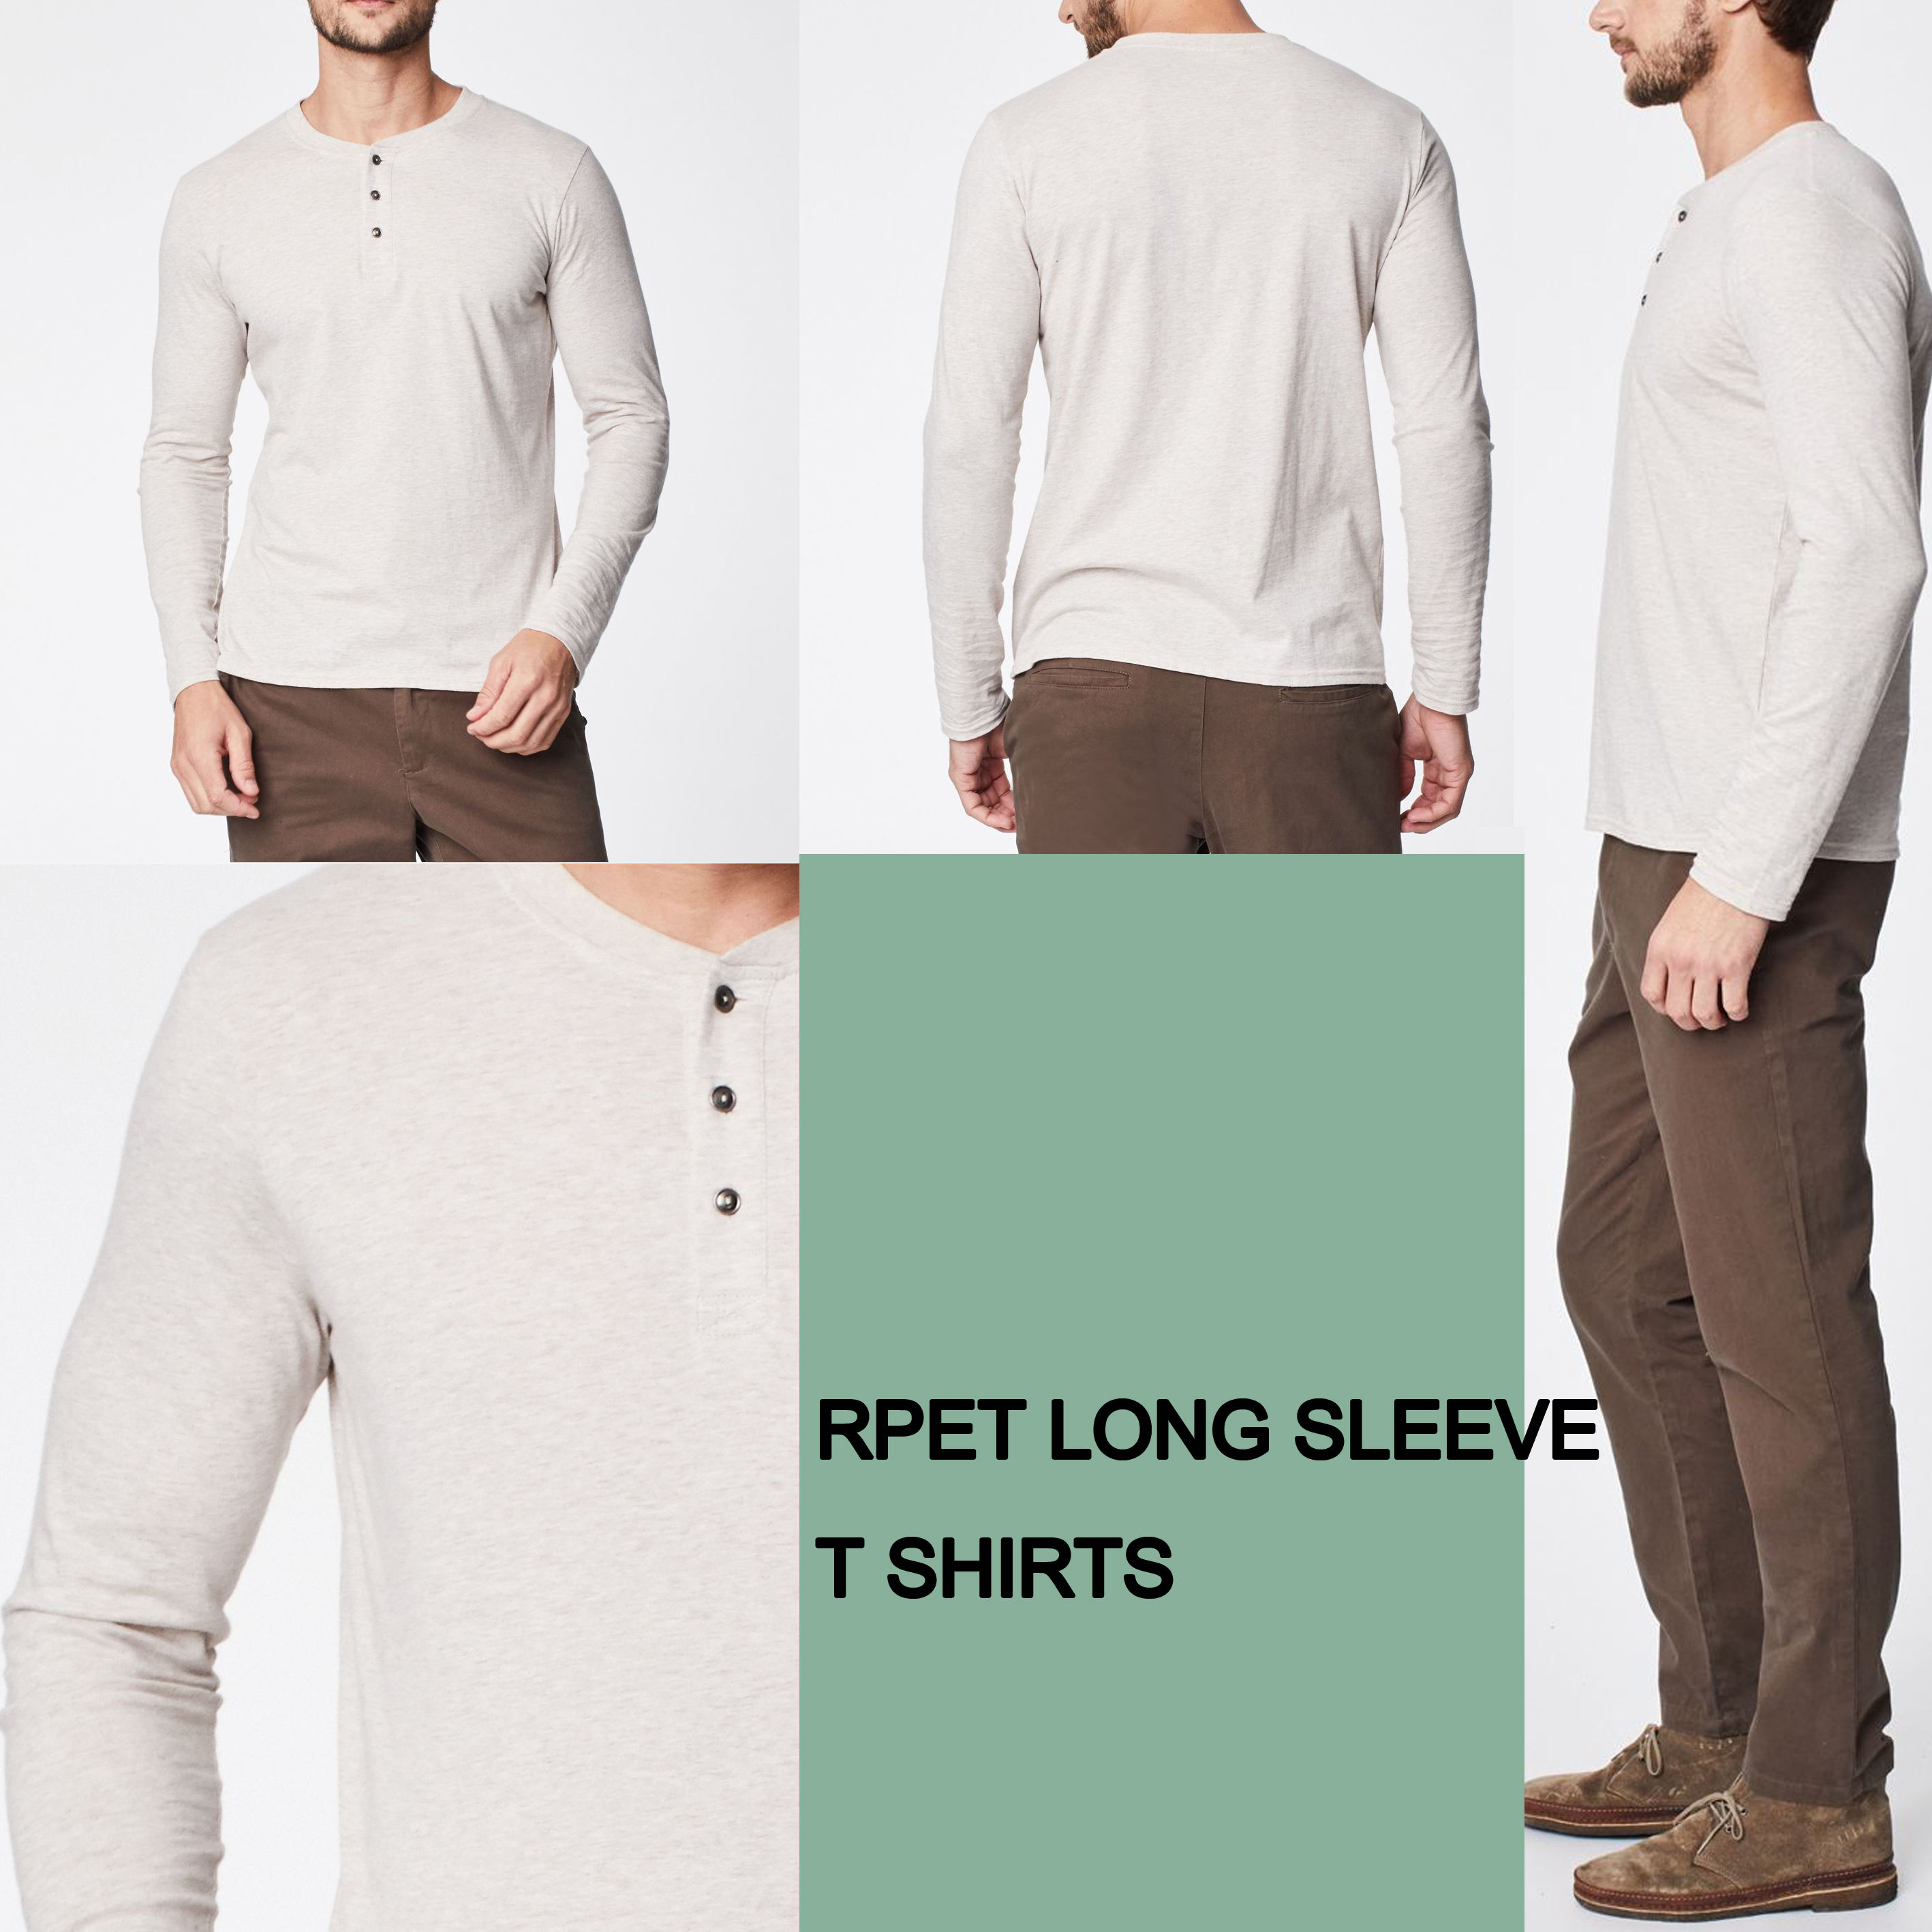 Wholesale fashion Mens Long sleeves Straight hem round neck casual slim fit bleach rpet t shirts custom